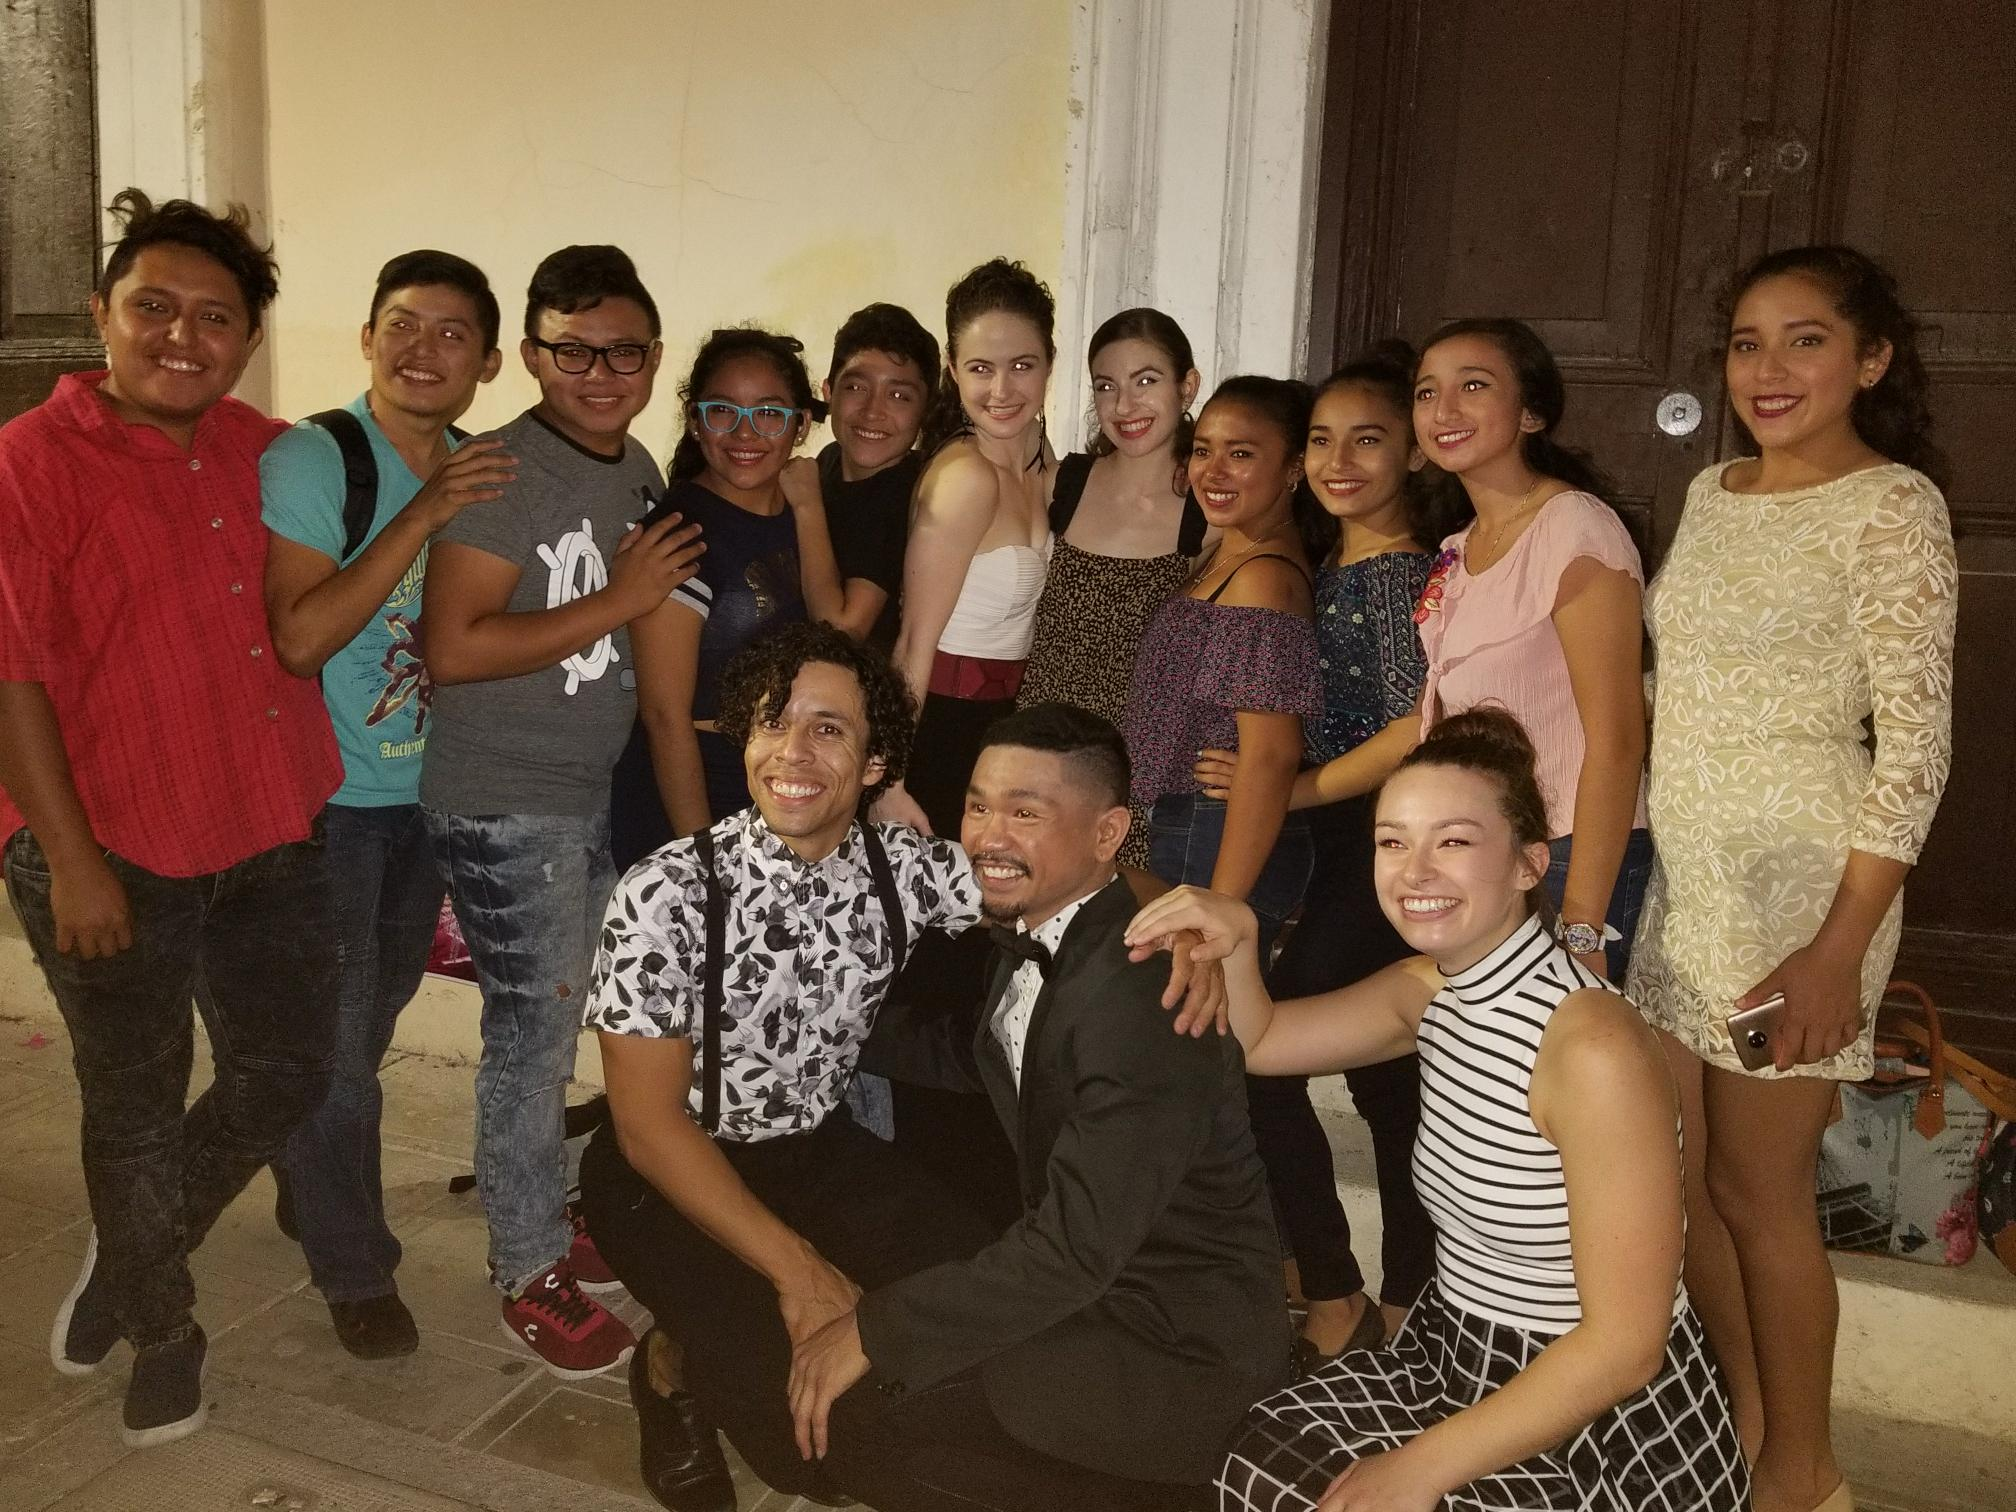 Eryc Taylor Dance Company posing with some students from one of their workshop held in Chocholá.